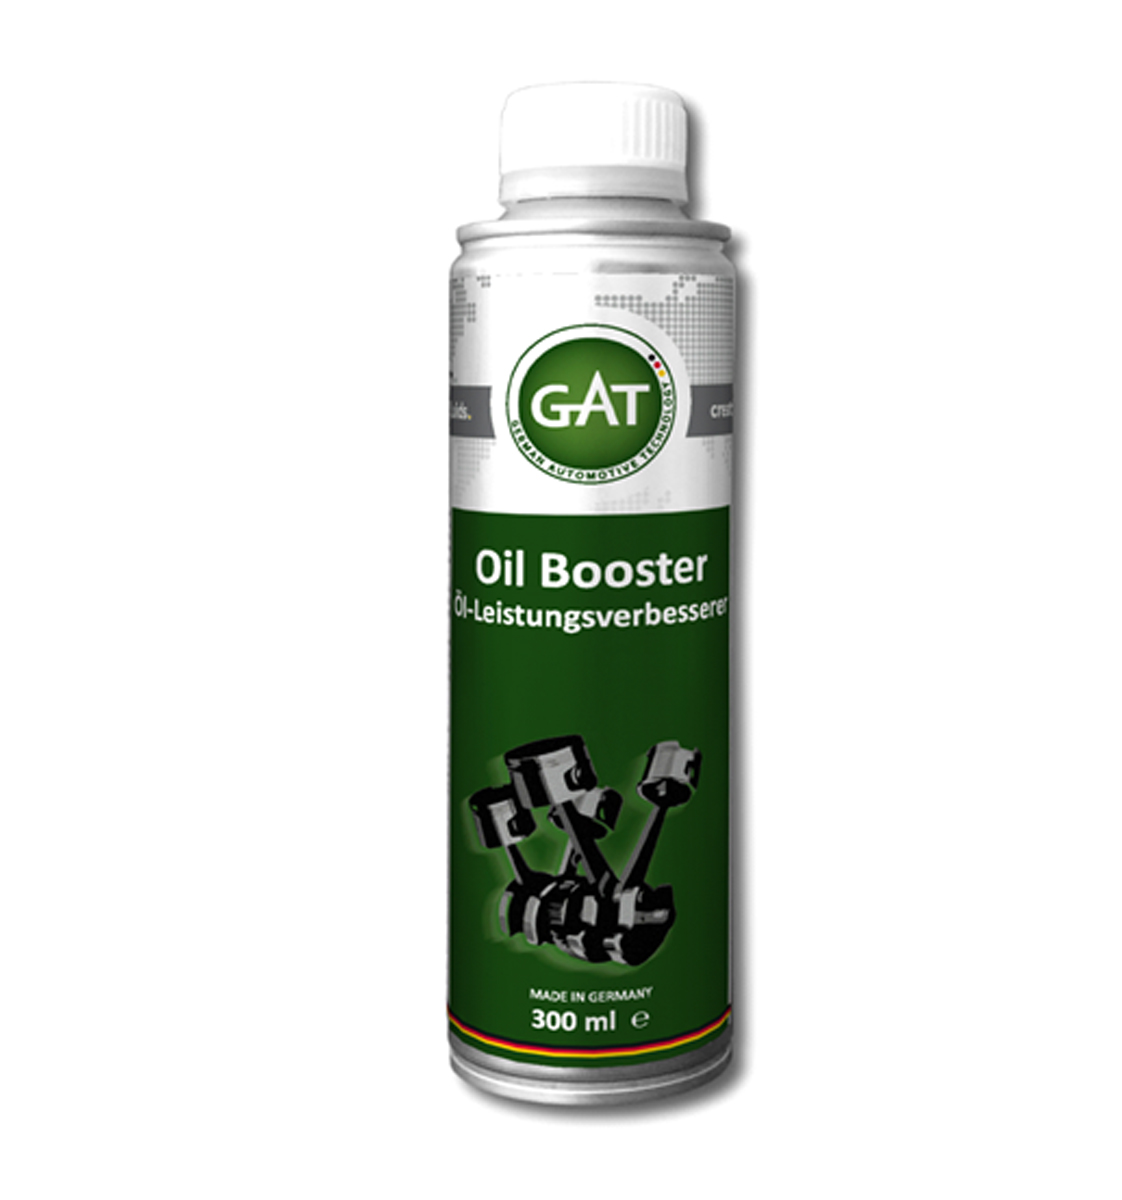 Oil Booster